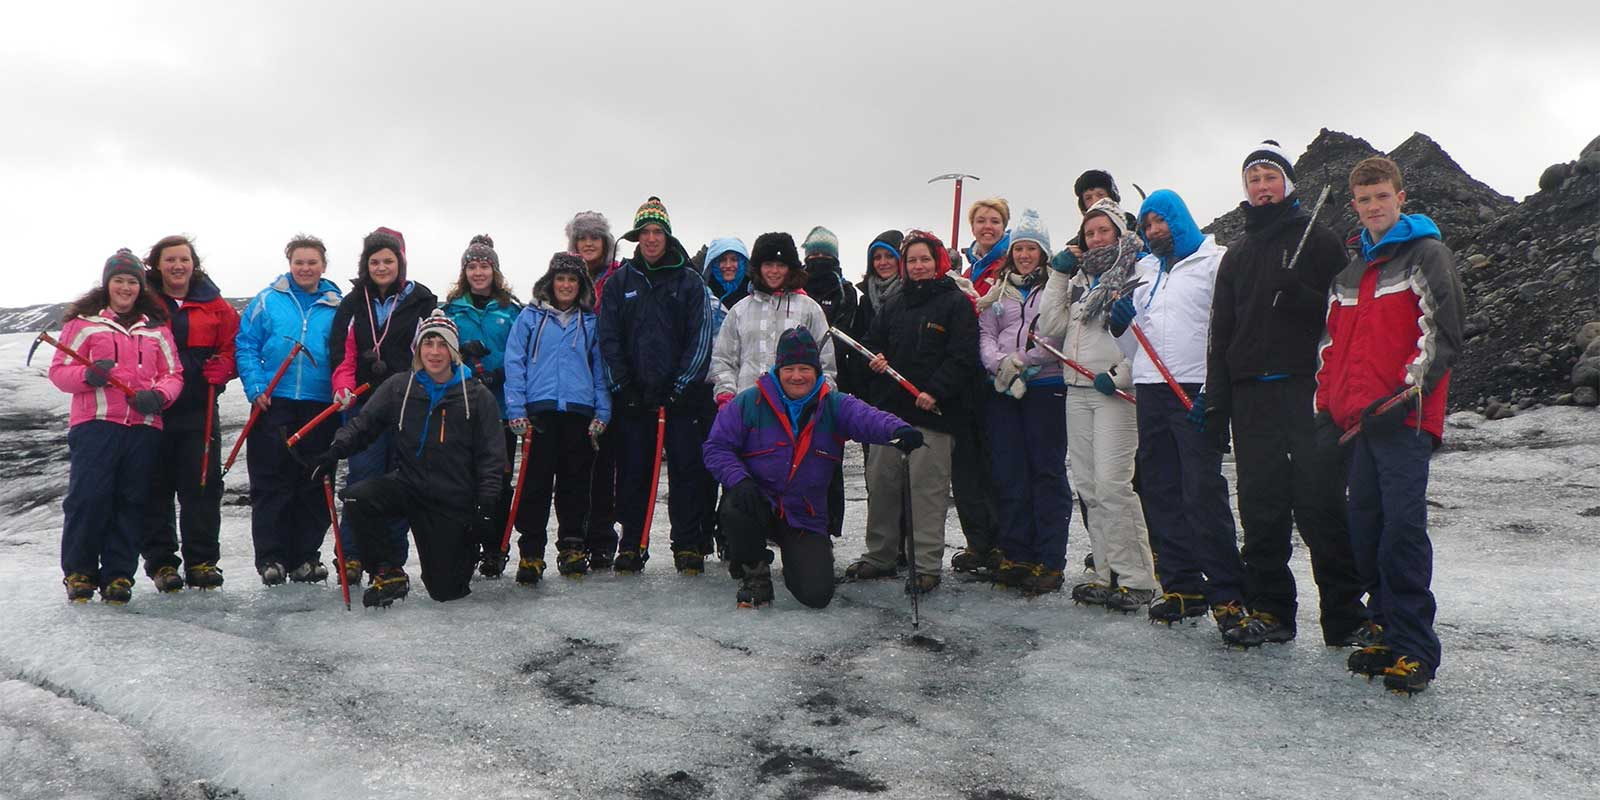 School group with ice picks after glacier trekking